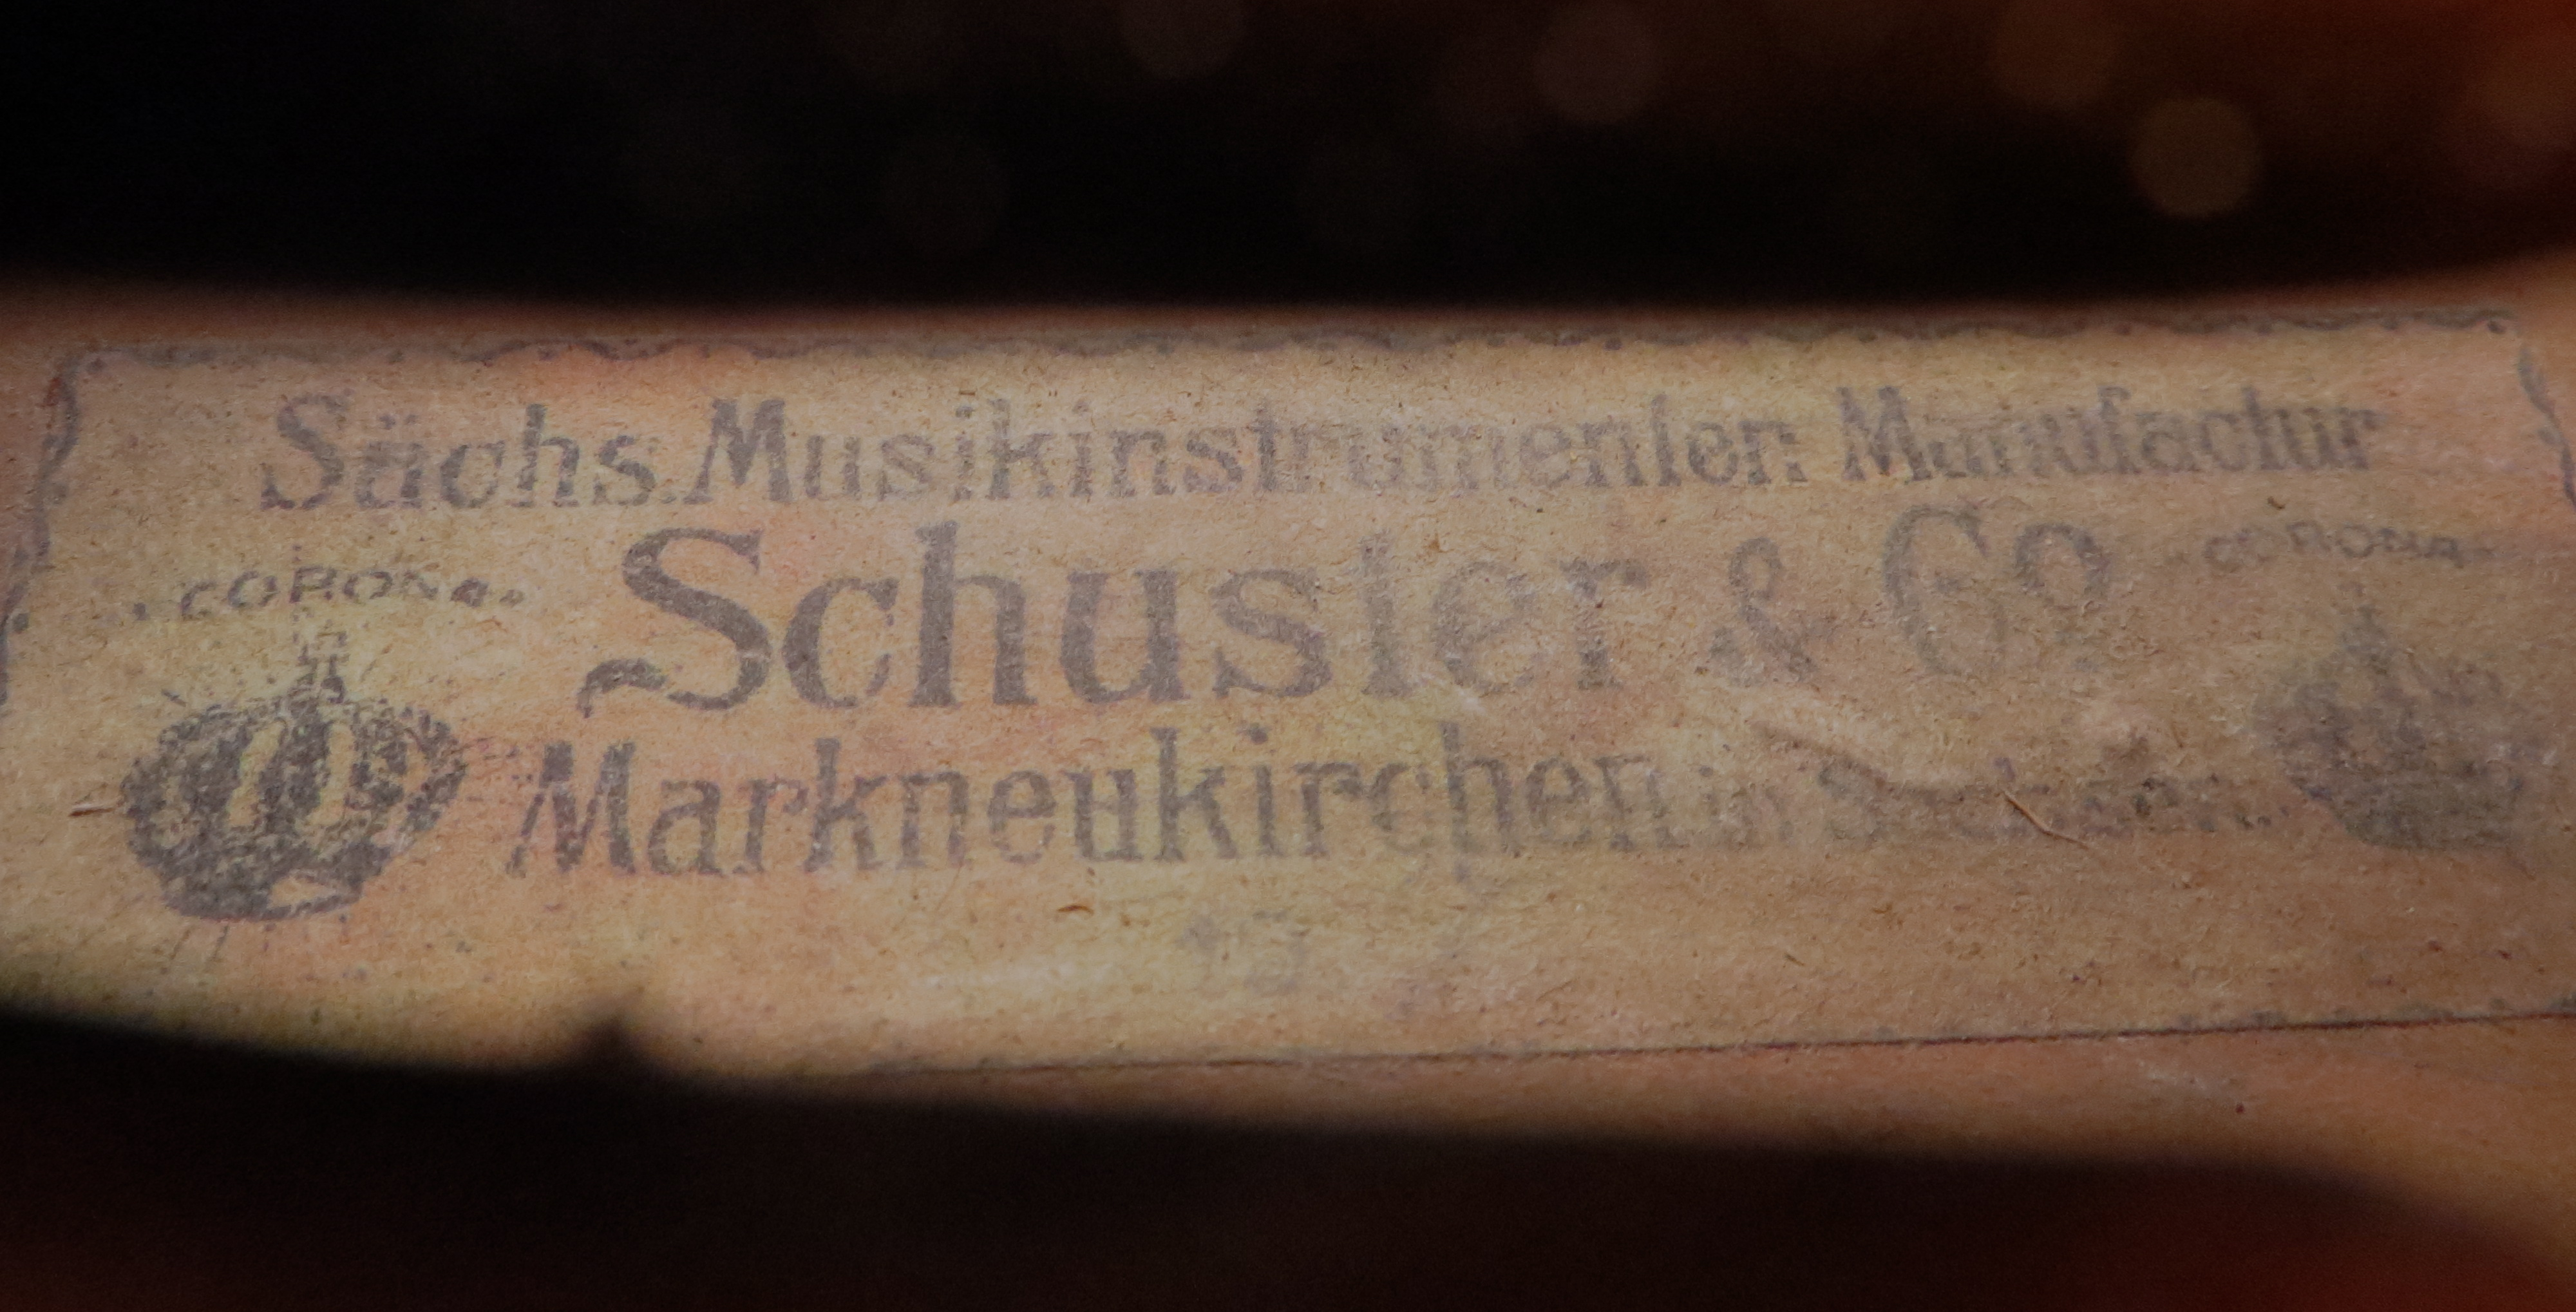 Vintage Maggini model ca.1890 violin